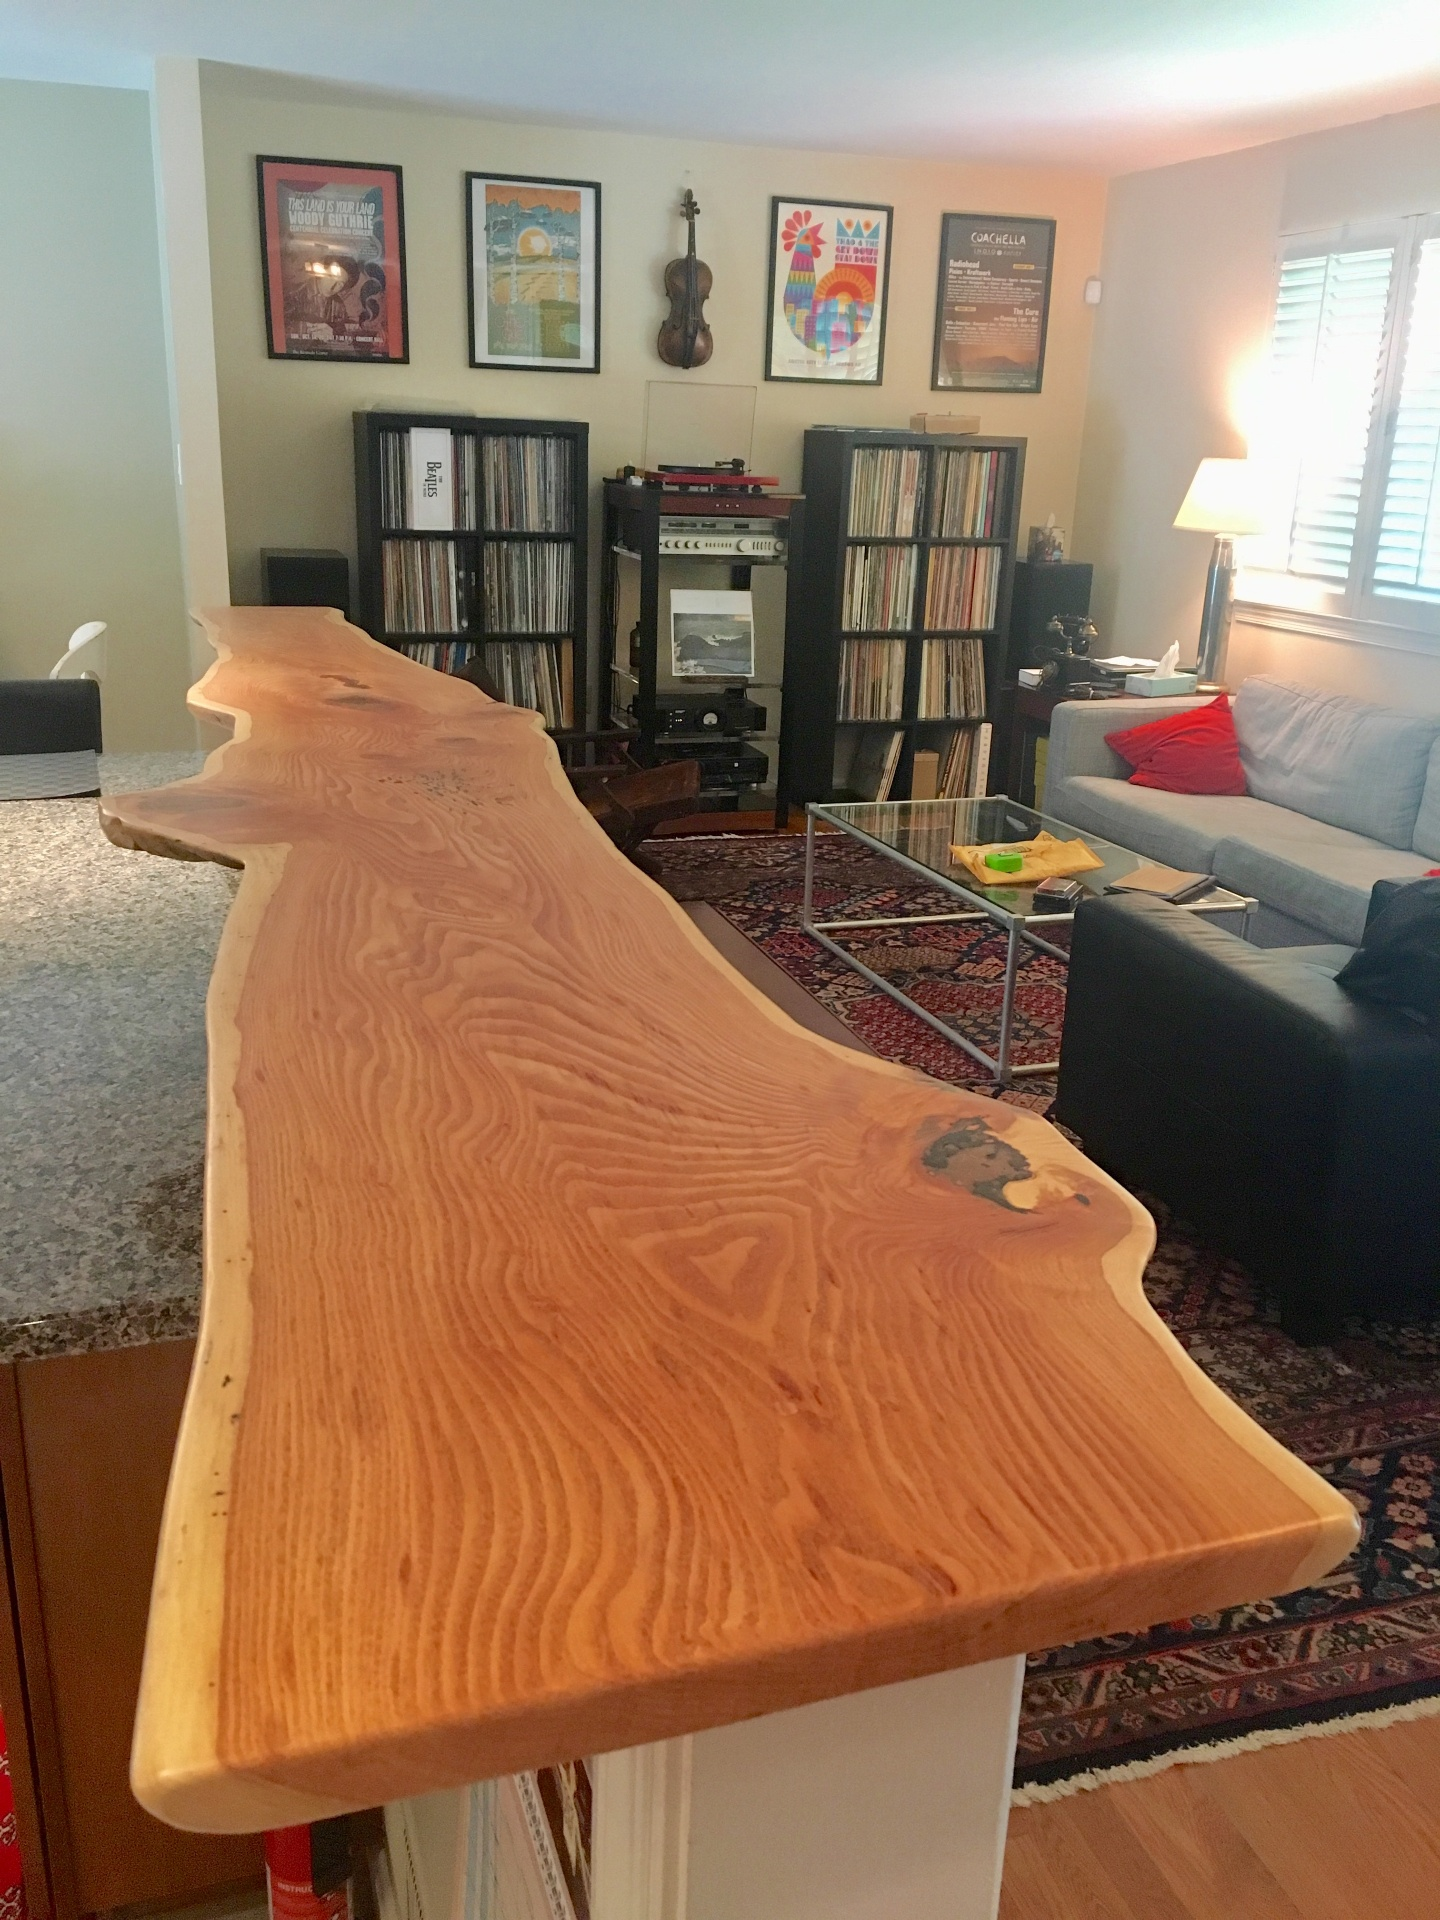 Live edge honey locust slab for a knee wall top.